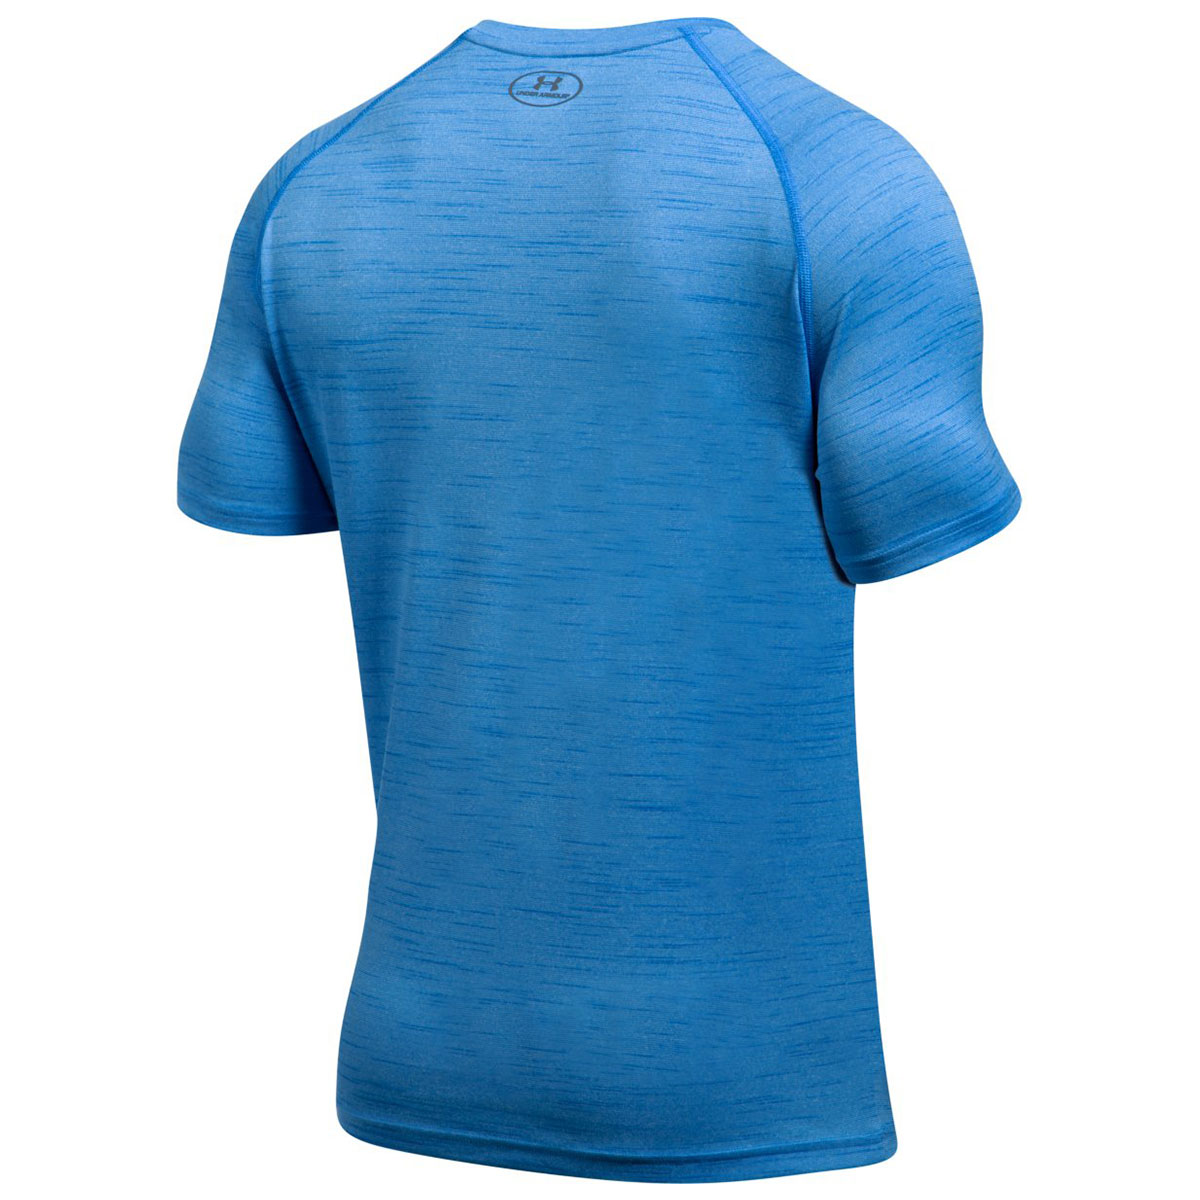 Under-Armour-Mens-UA-Tech-SS-T-Shirt-HeatGear-Training-31-OFF-RRP thumbnail 55